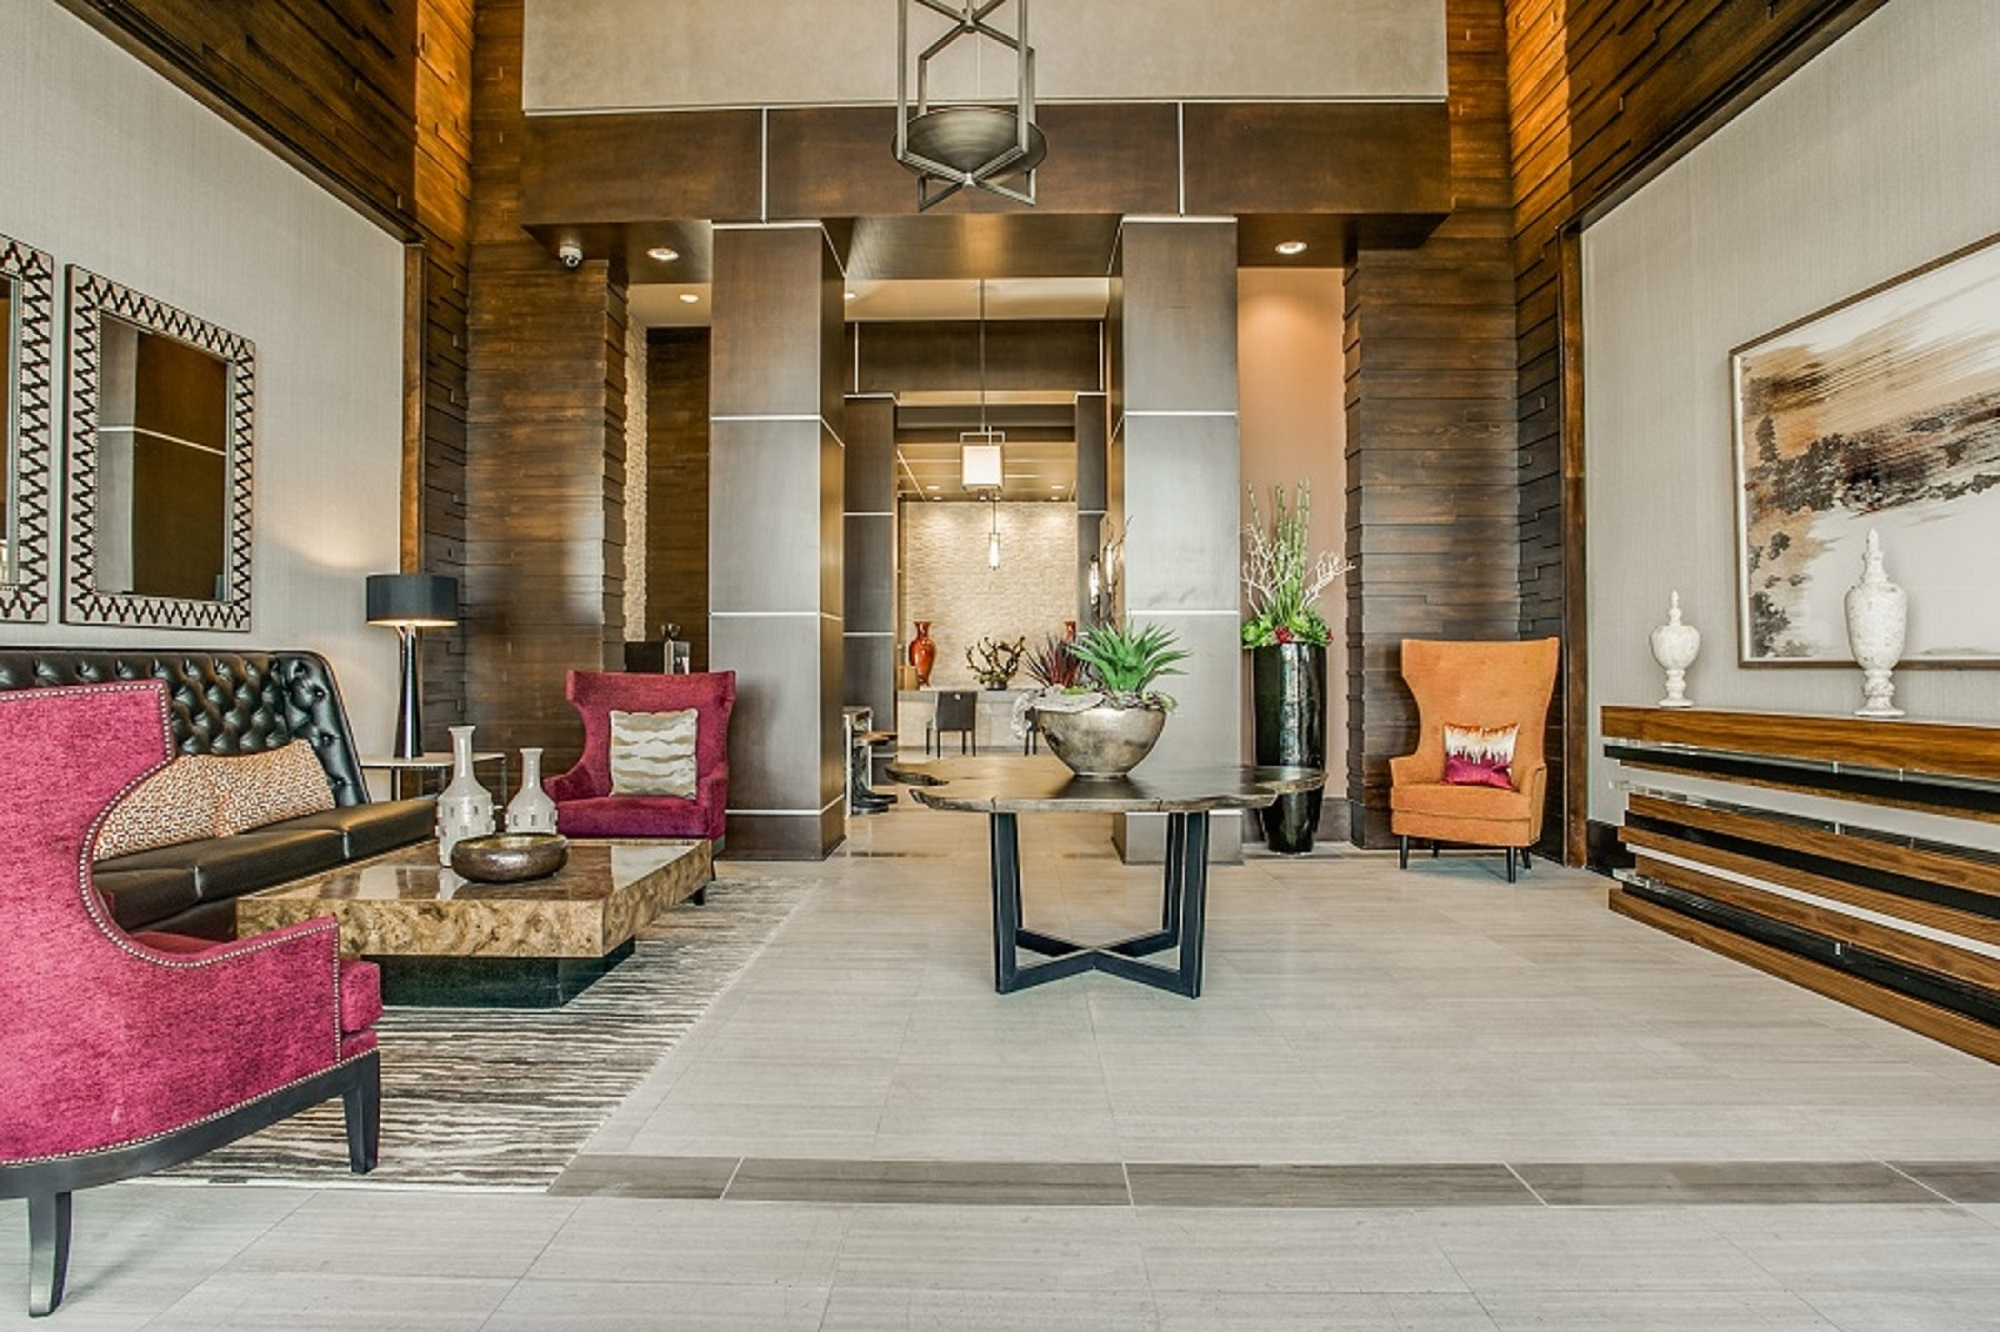 The Kelton At Clearforkluxury Apartment Living In Fort Worth Texas